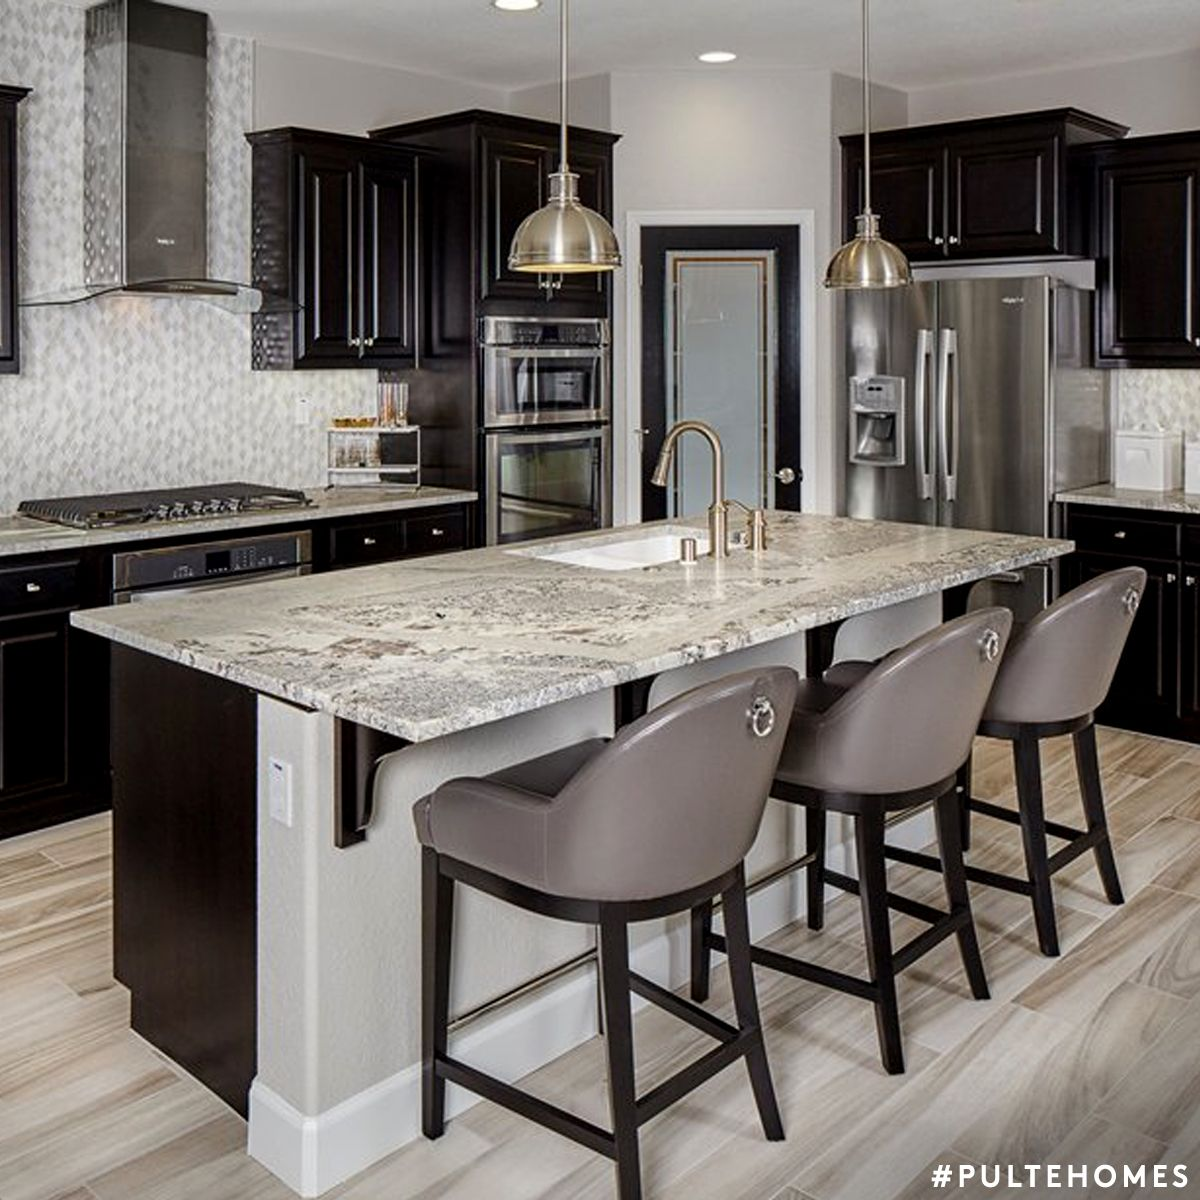 New Home Kitchen Design: Design Inspiration: A Gorgeous, Modern Pulte Kitchen